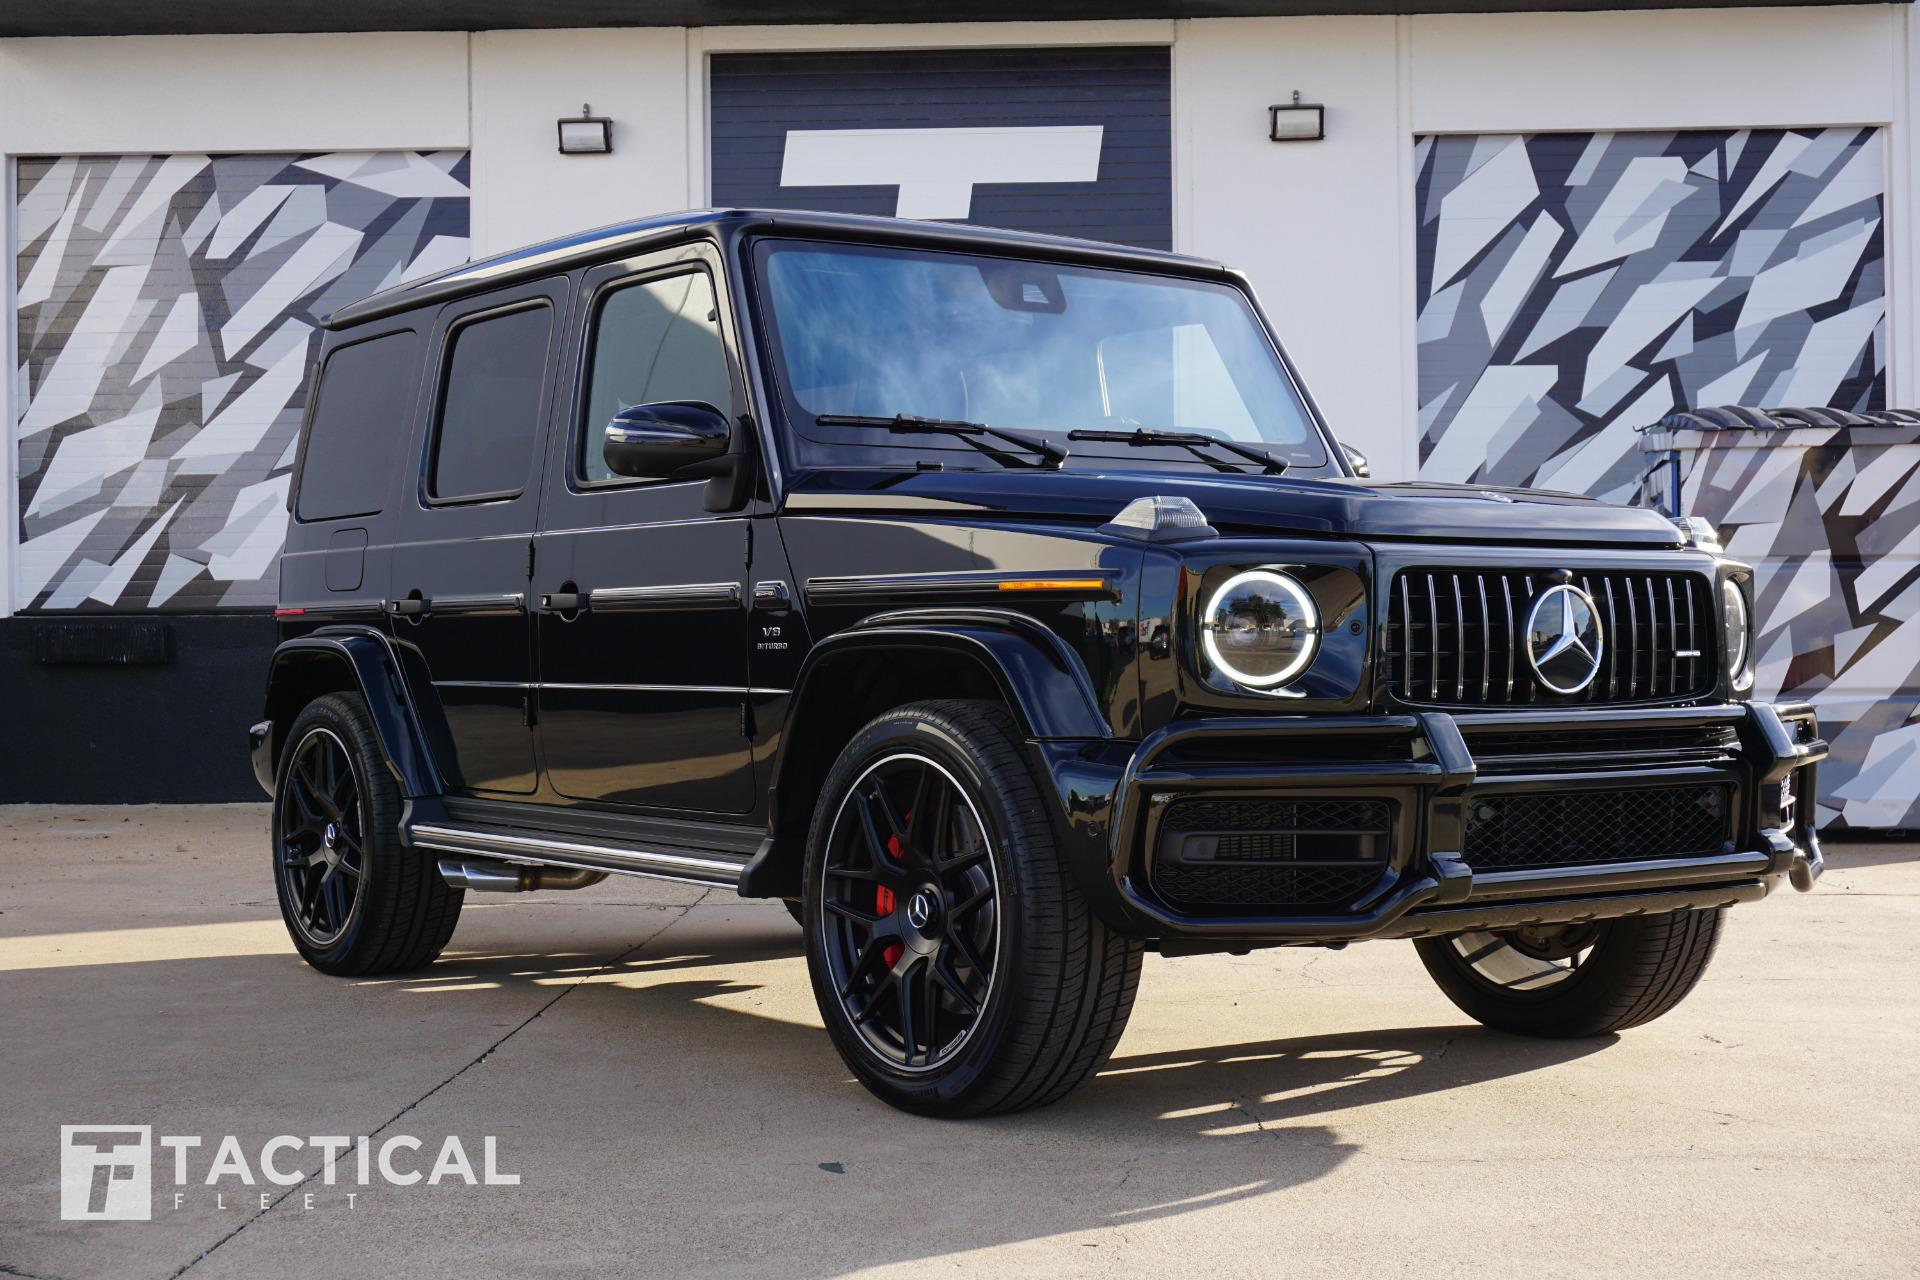 Used 2020 Mercedes Benz G Class Amg G 63 For Sale 204 900 Tactical Fleet Stock Tf1443